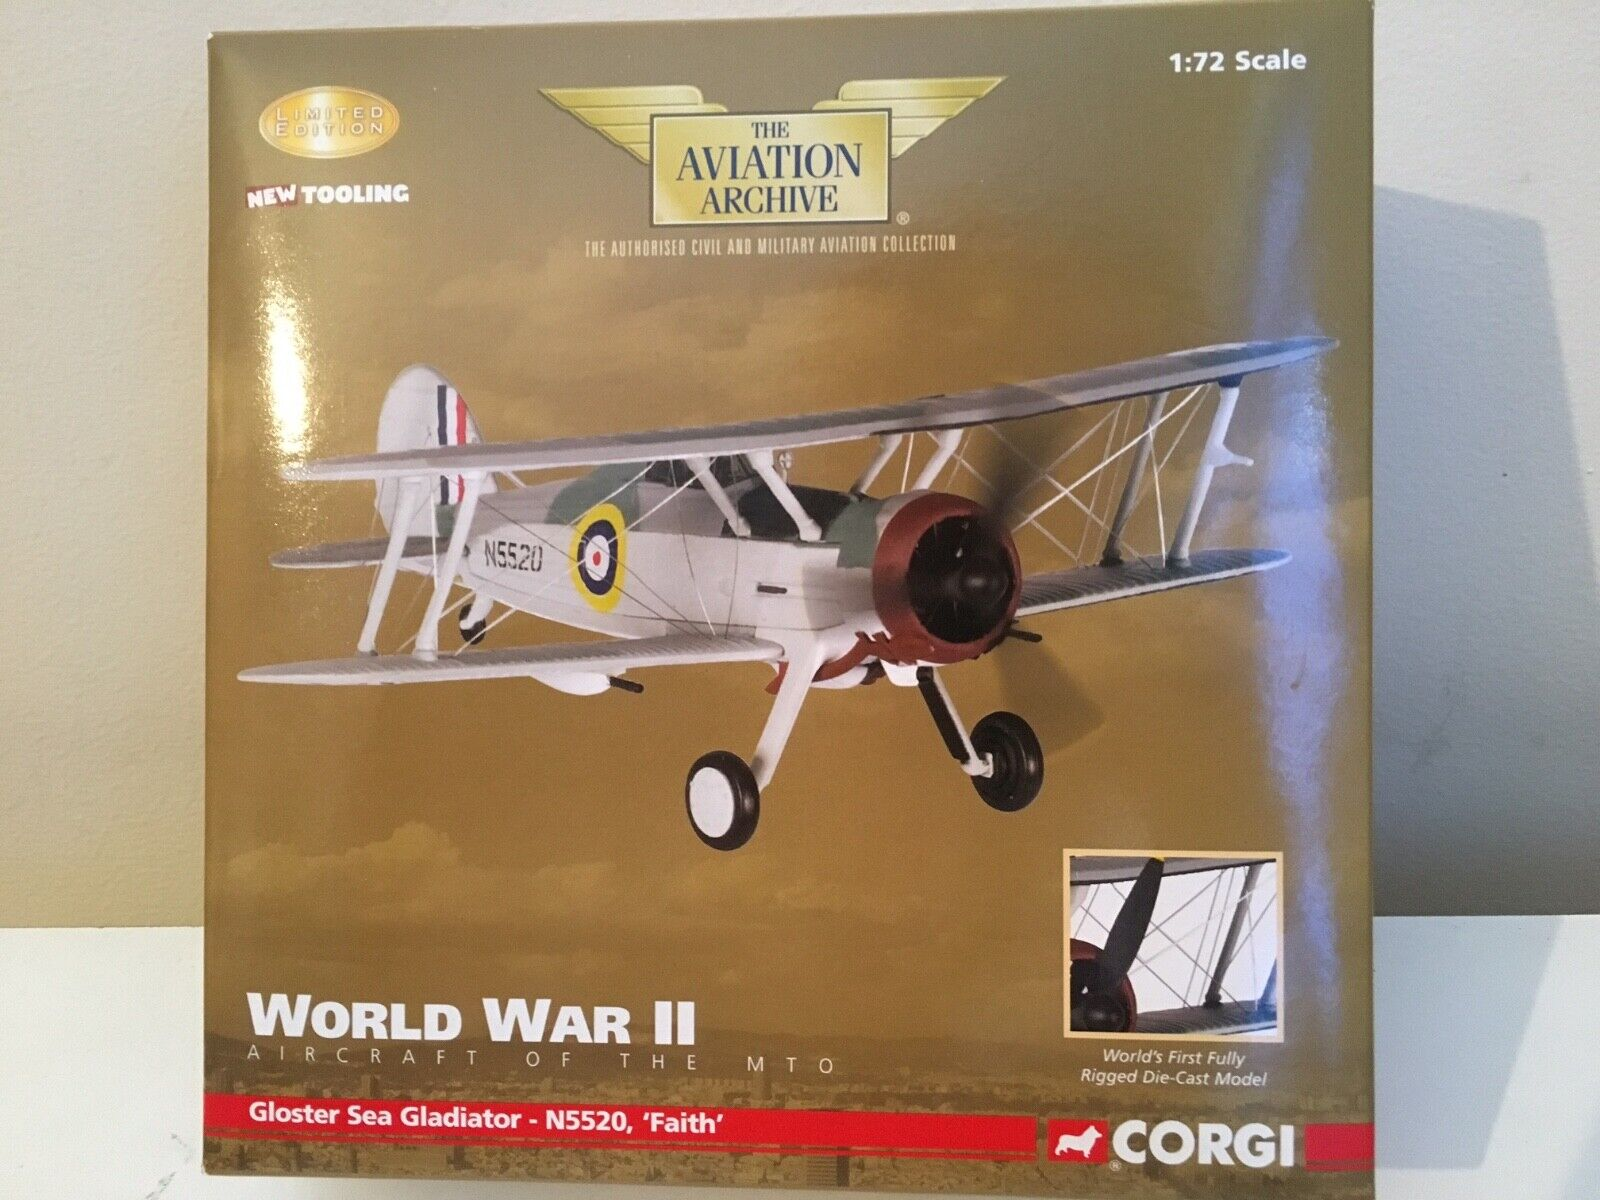 1 72 Corgi AA36203 - Gloster Sea Gladiator - N5531, 'FAITH', Malta - June 1940